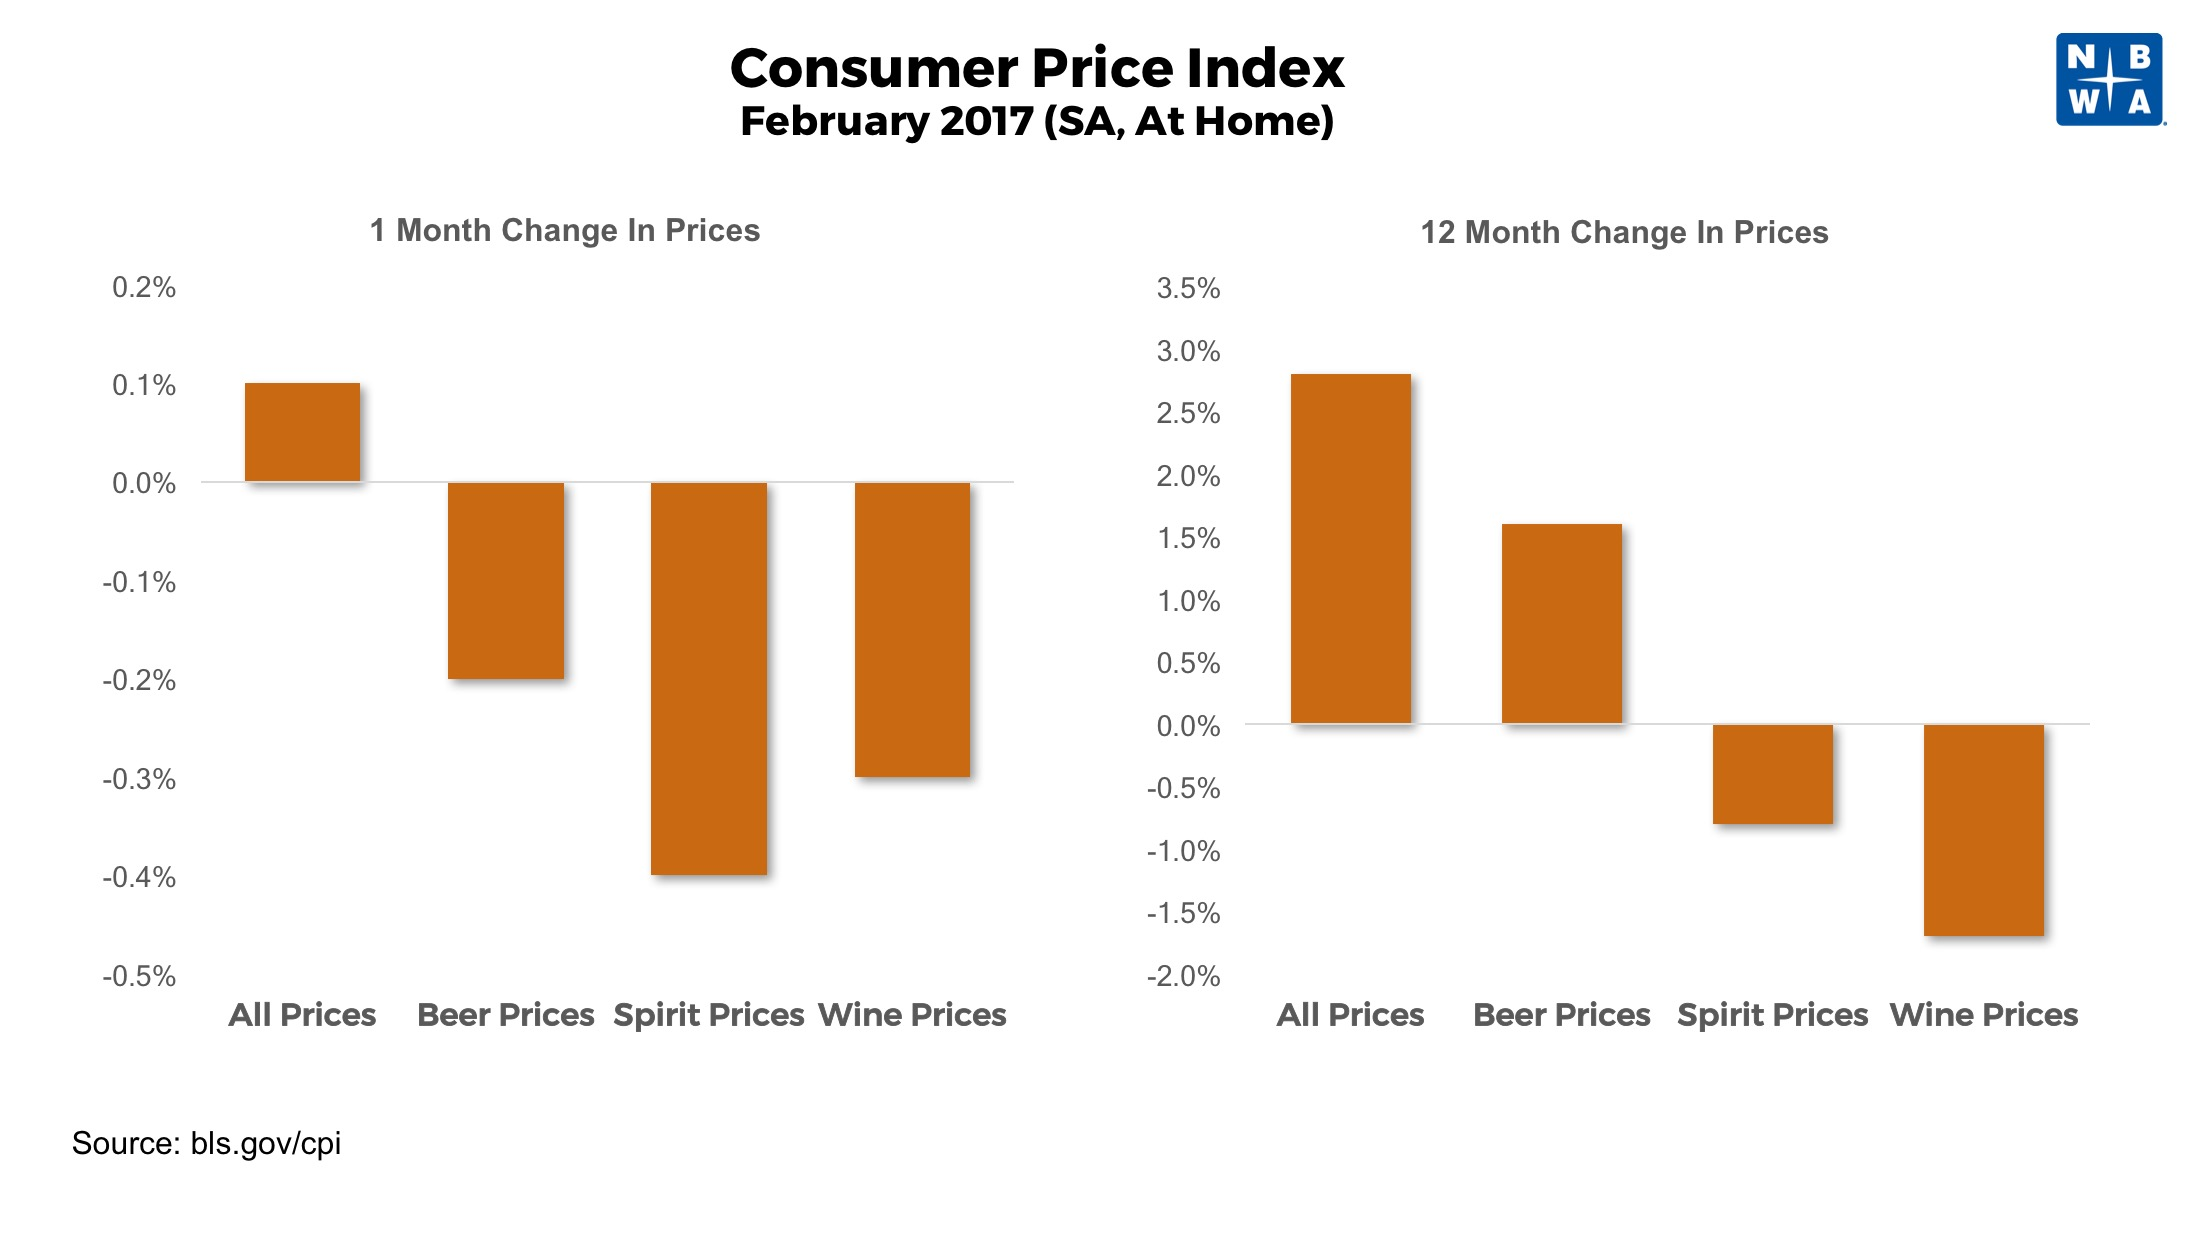 Consumer Price Index for Alcohol Through February 2017